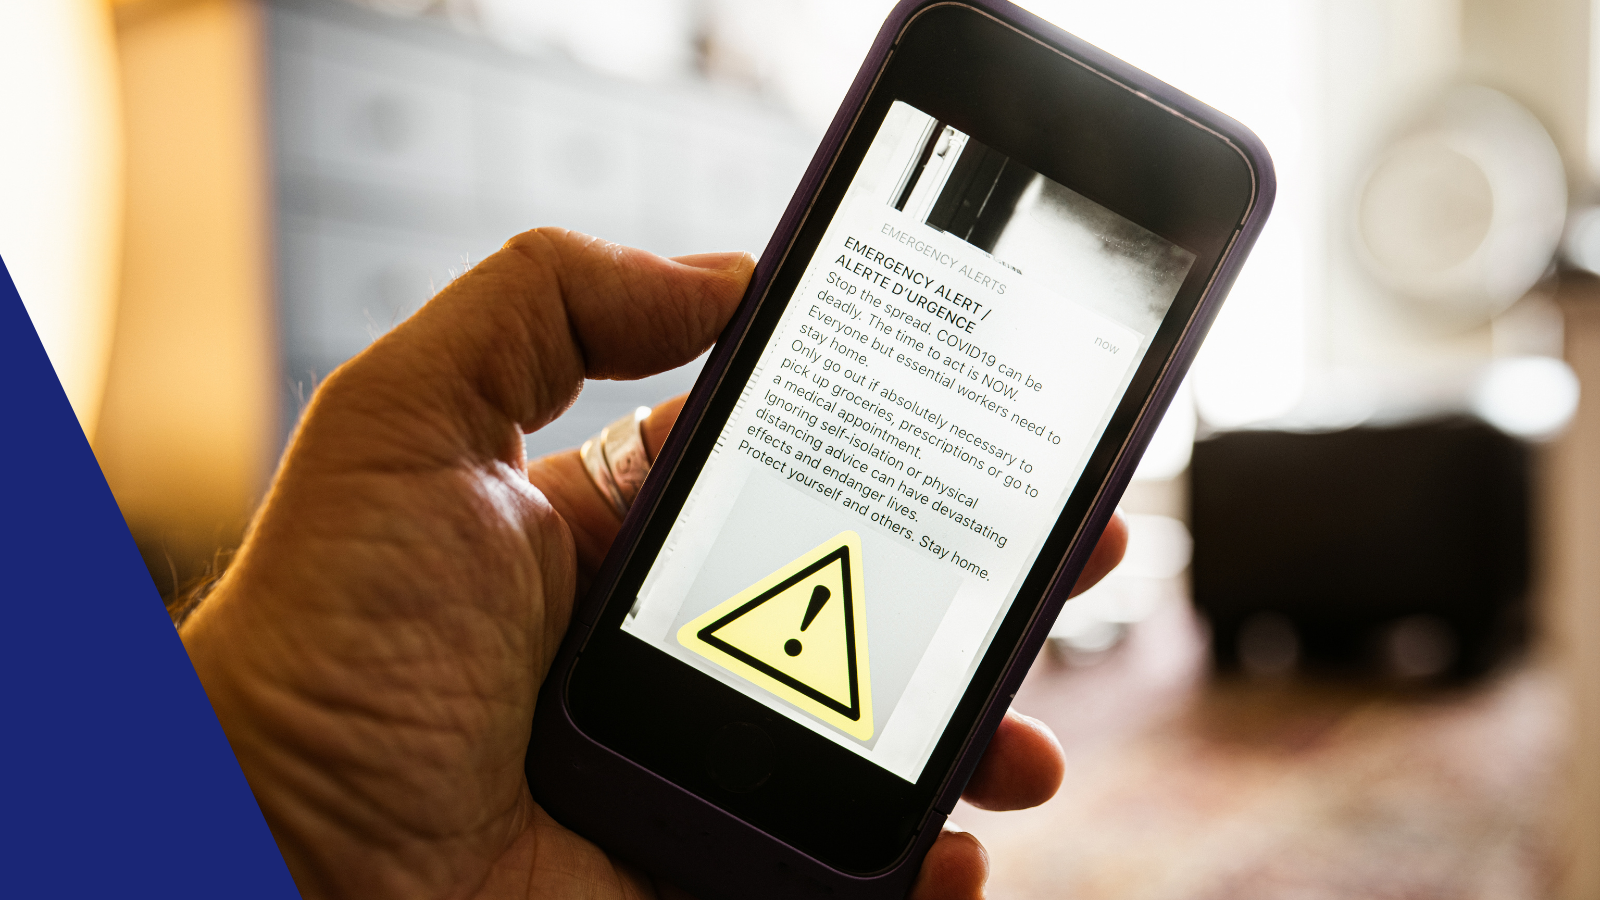 A cell phone in someone's hand with an emergency alert open on the screen